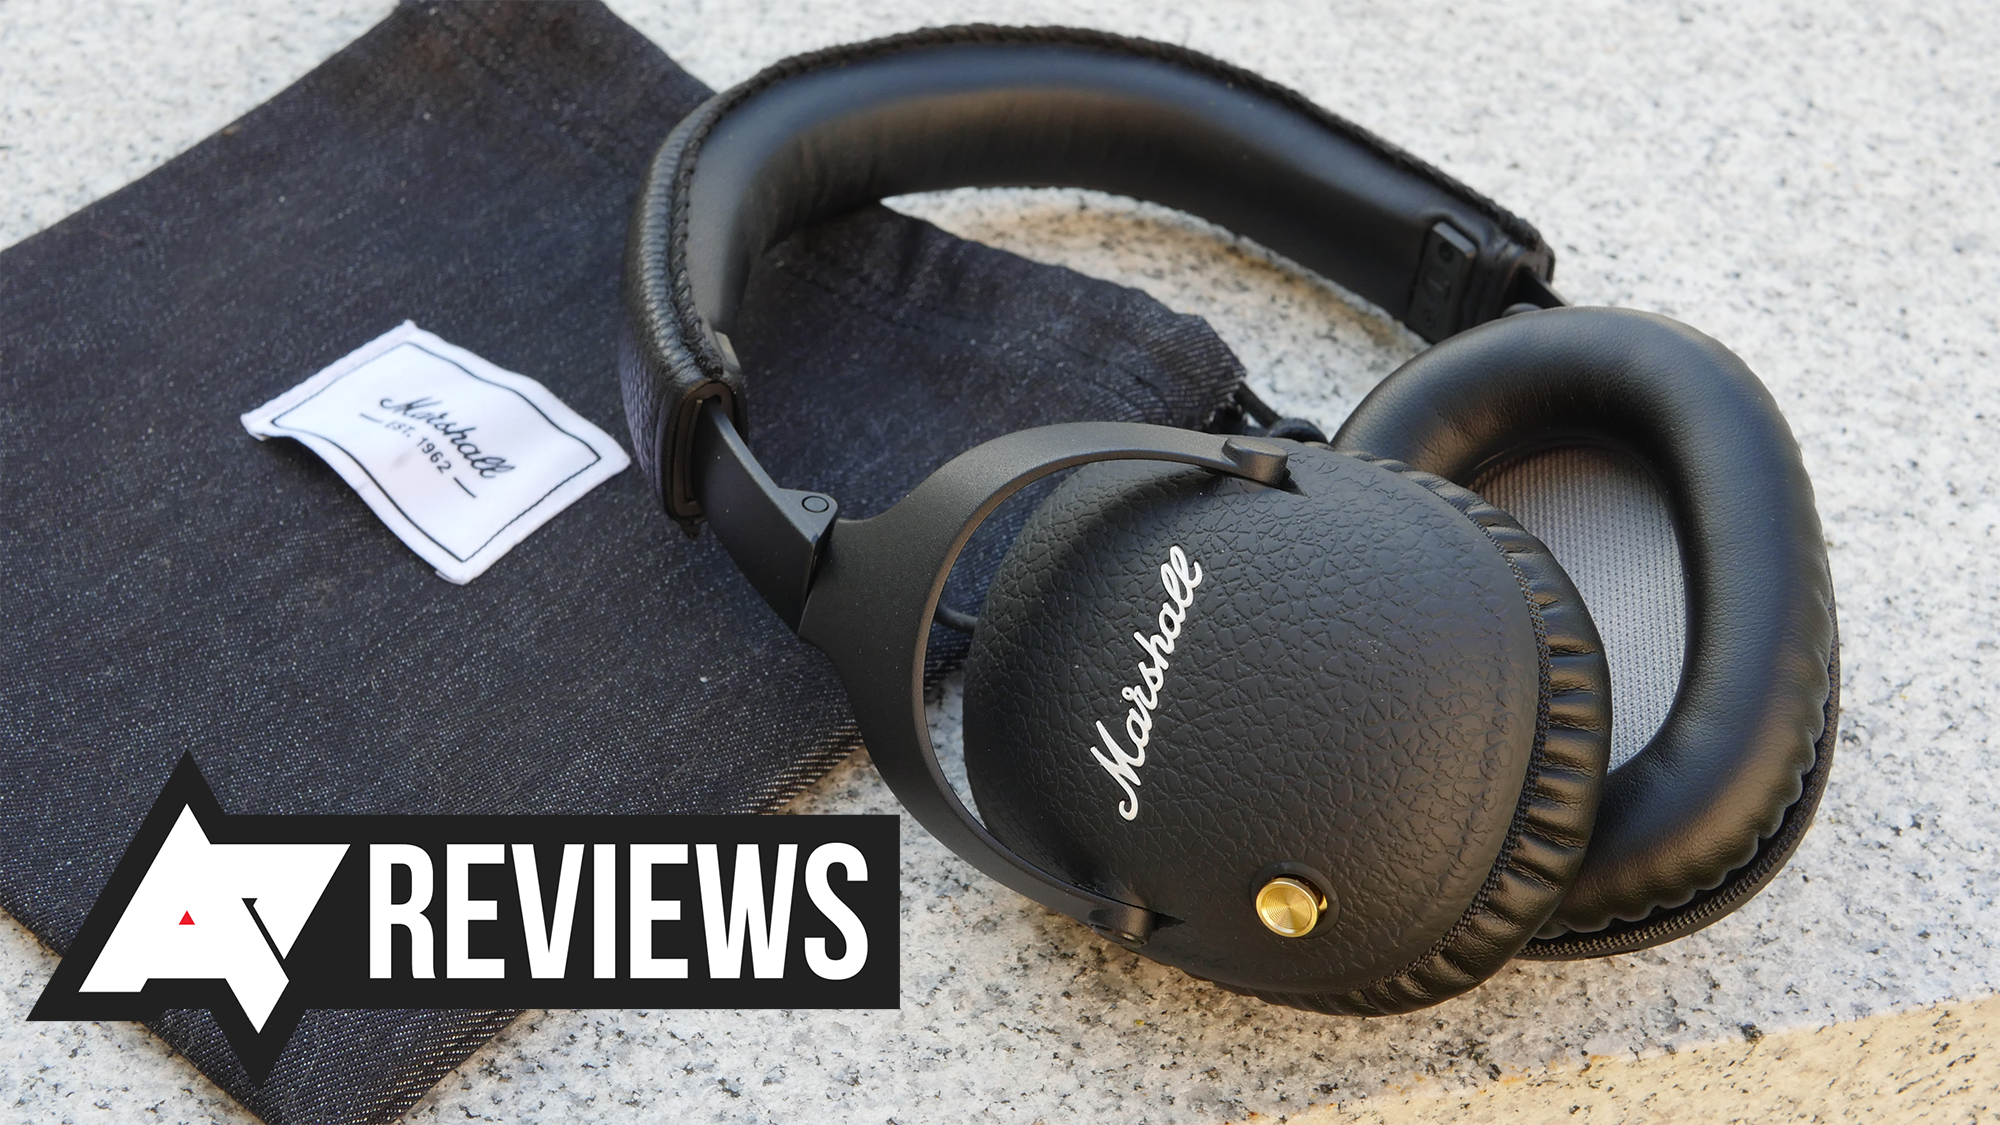 Marshall Monitor II A.N.C. review: Aggressive, confident styling with some key functional upgrades